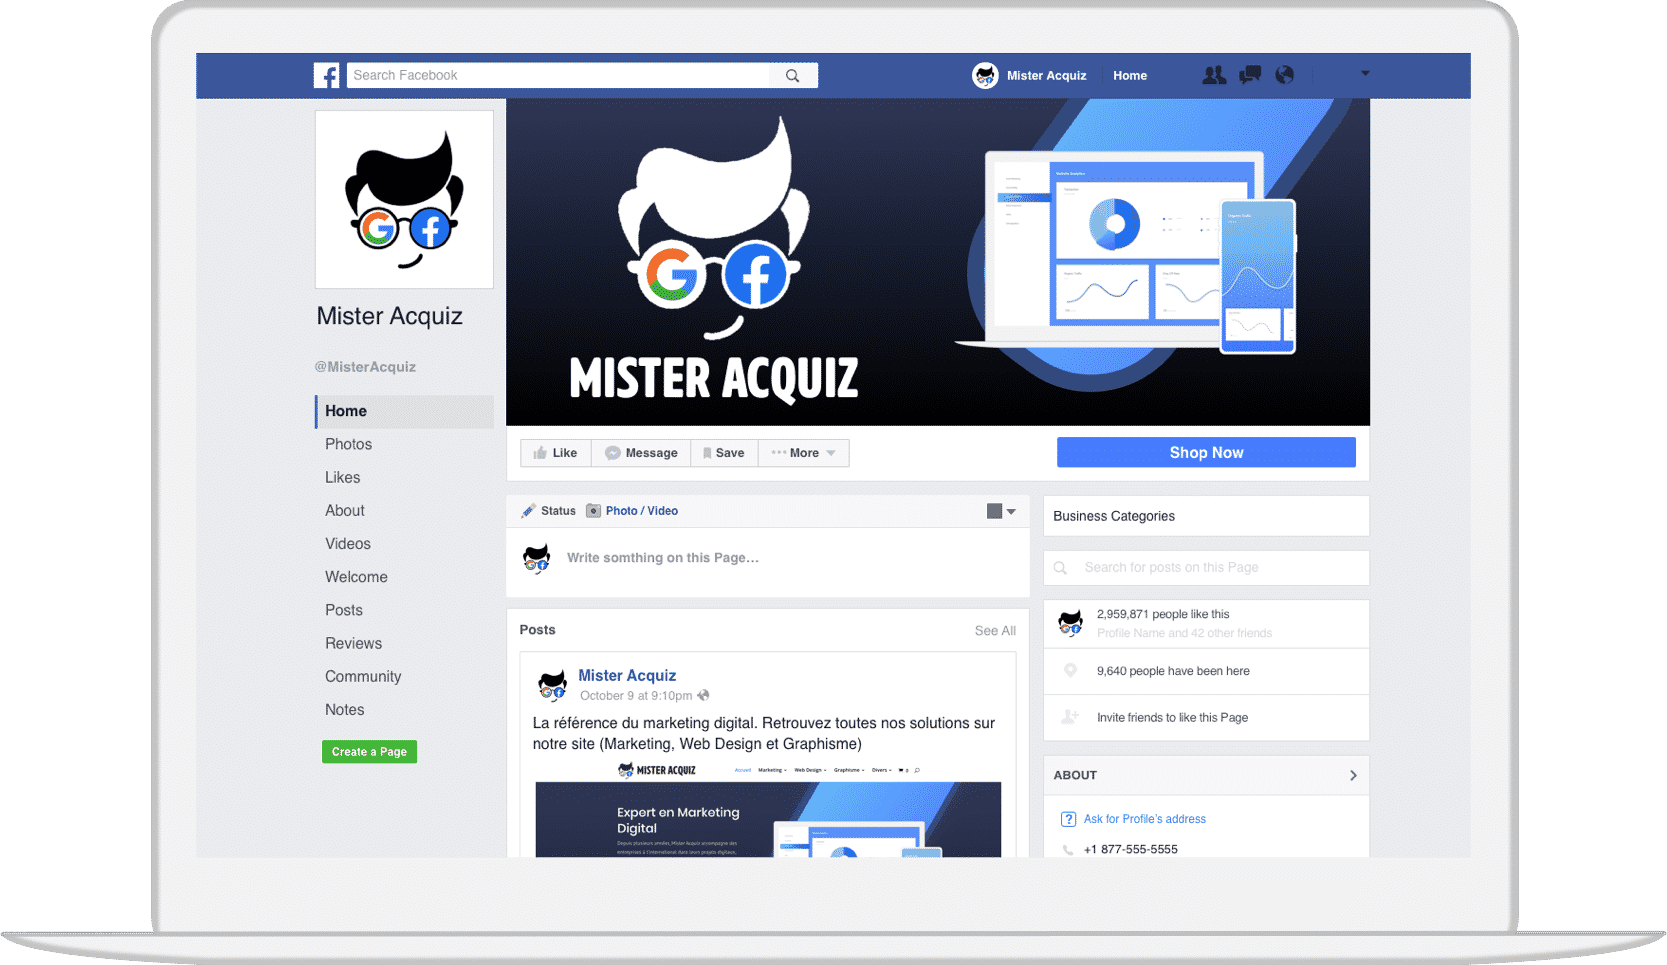 MisterAcquiz Community Management